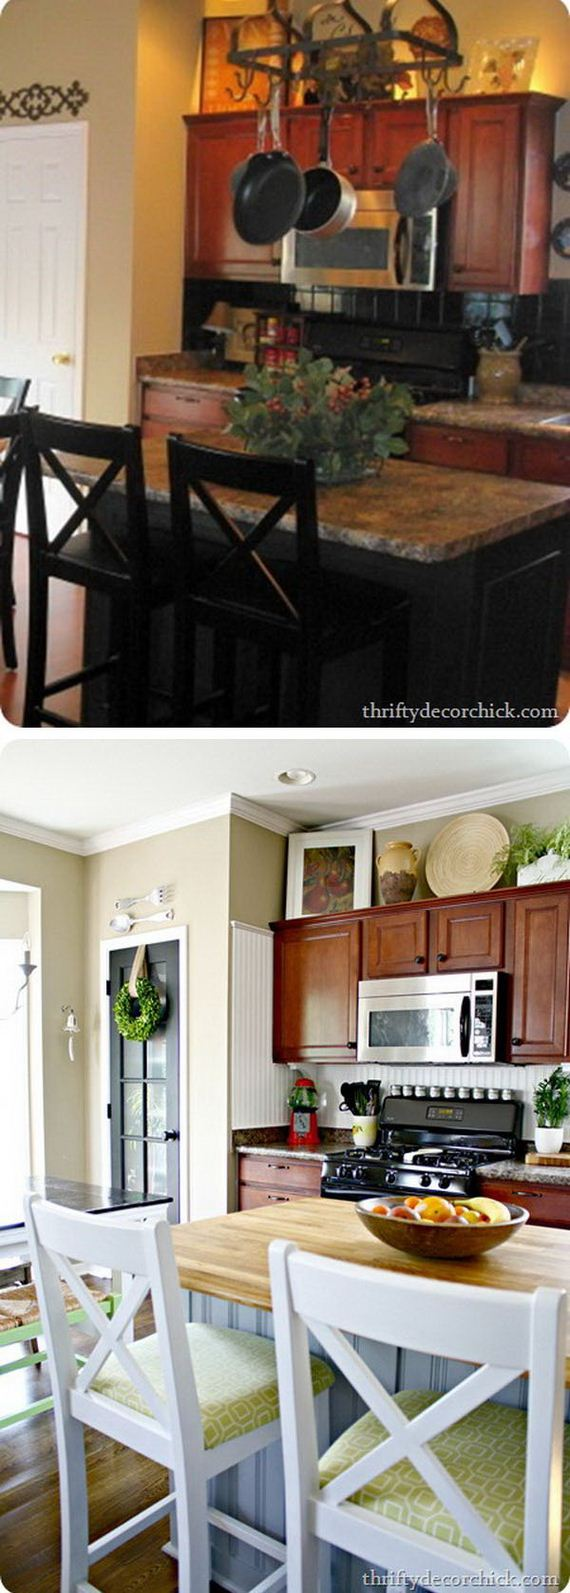 10-before-after-kitchen-makeover